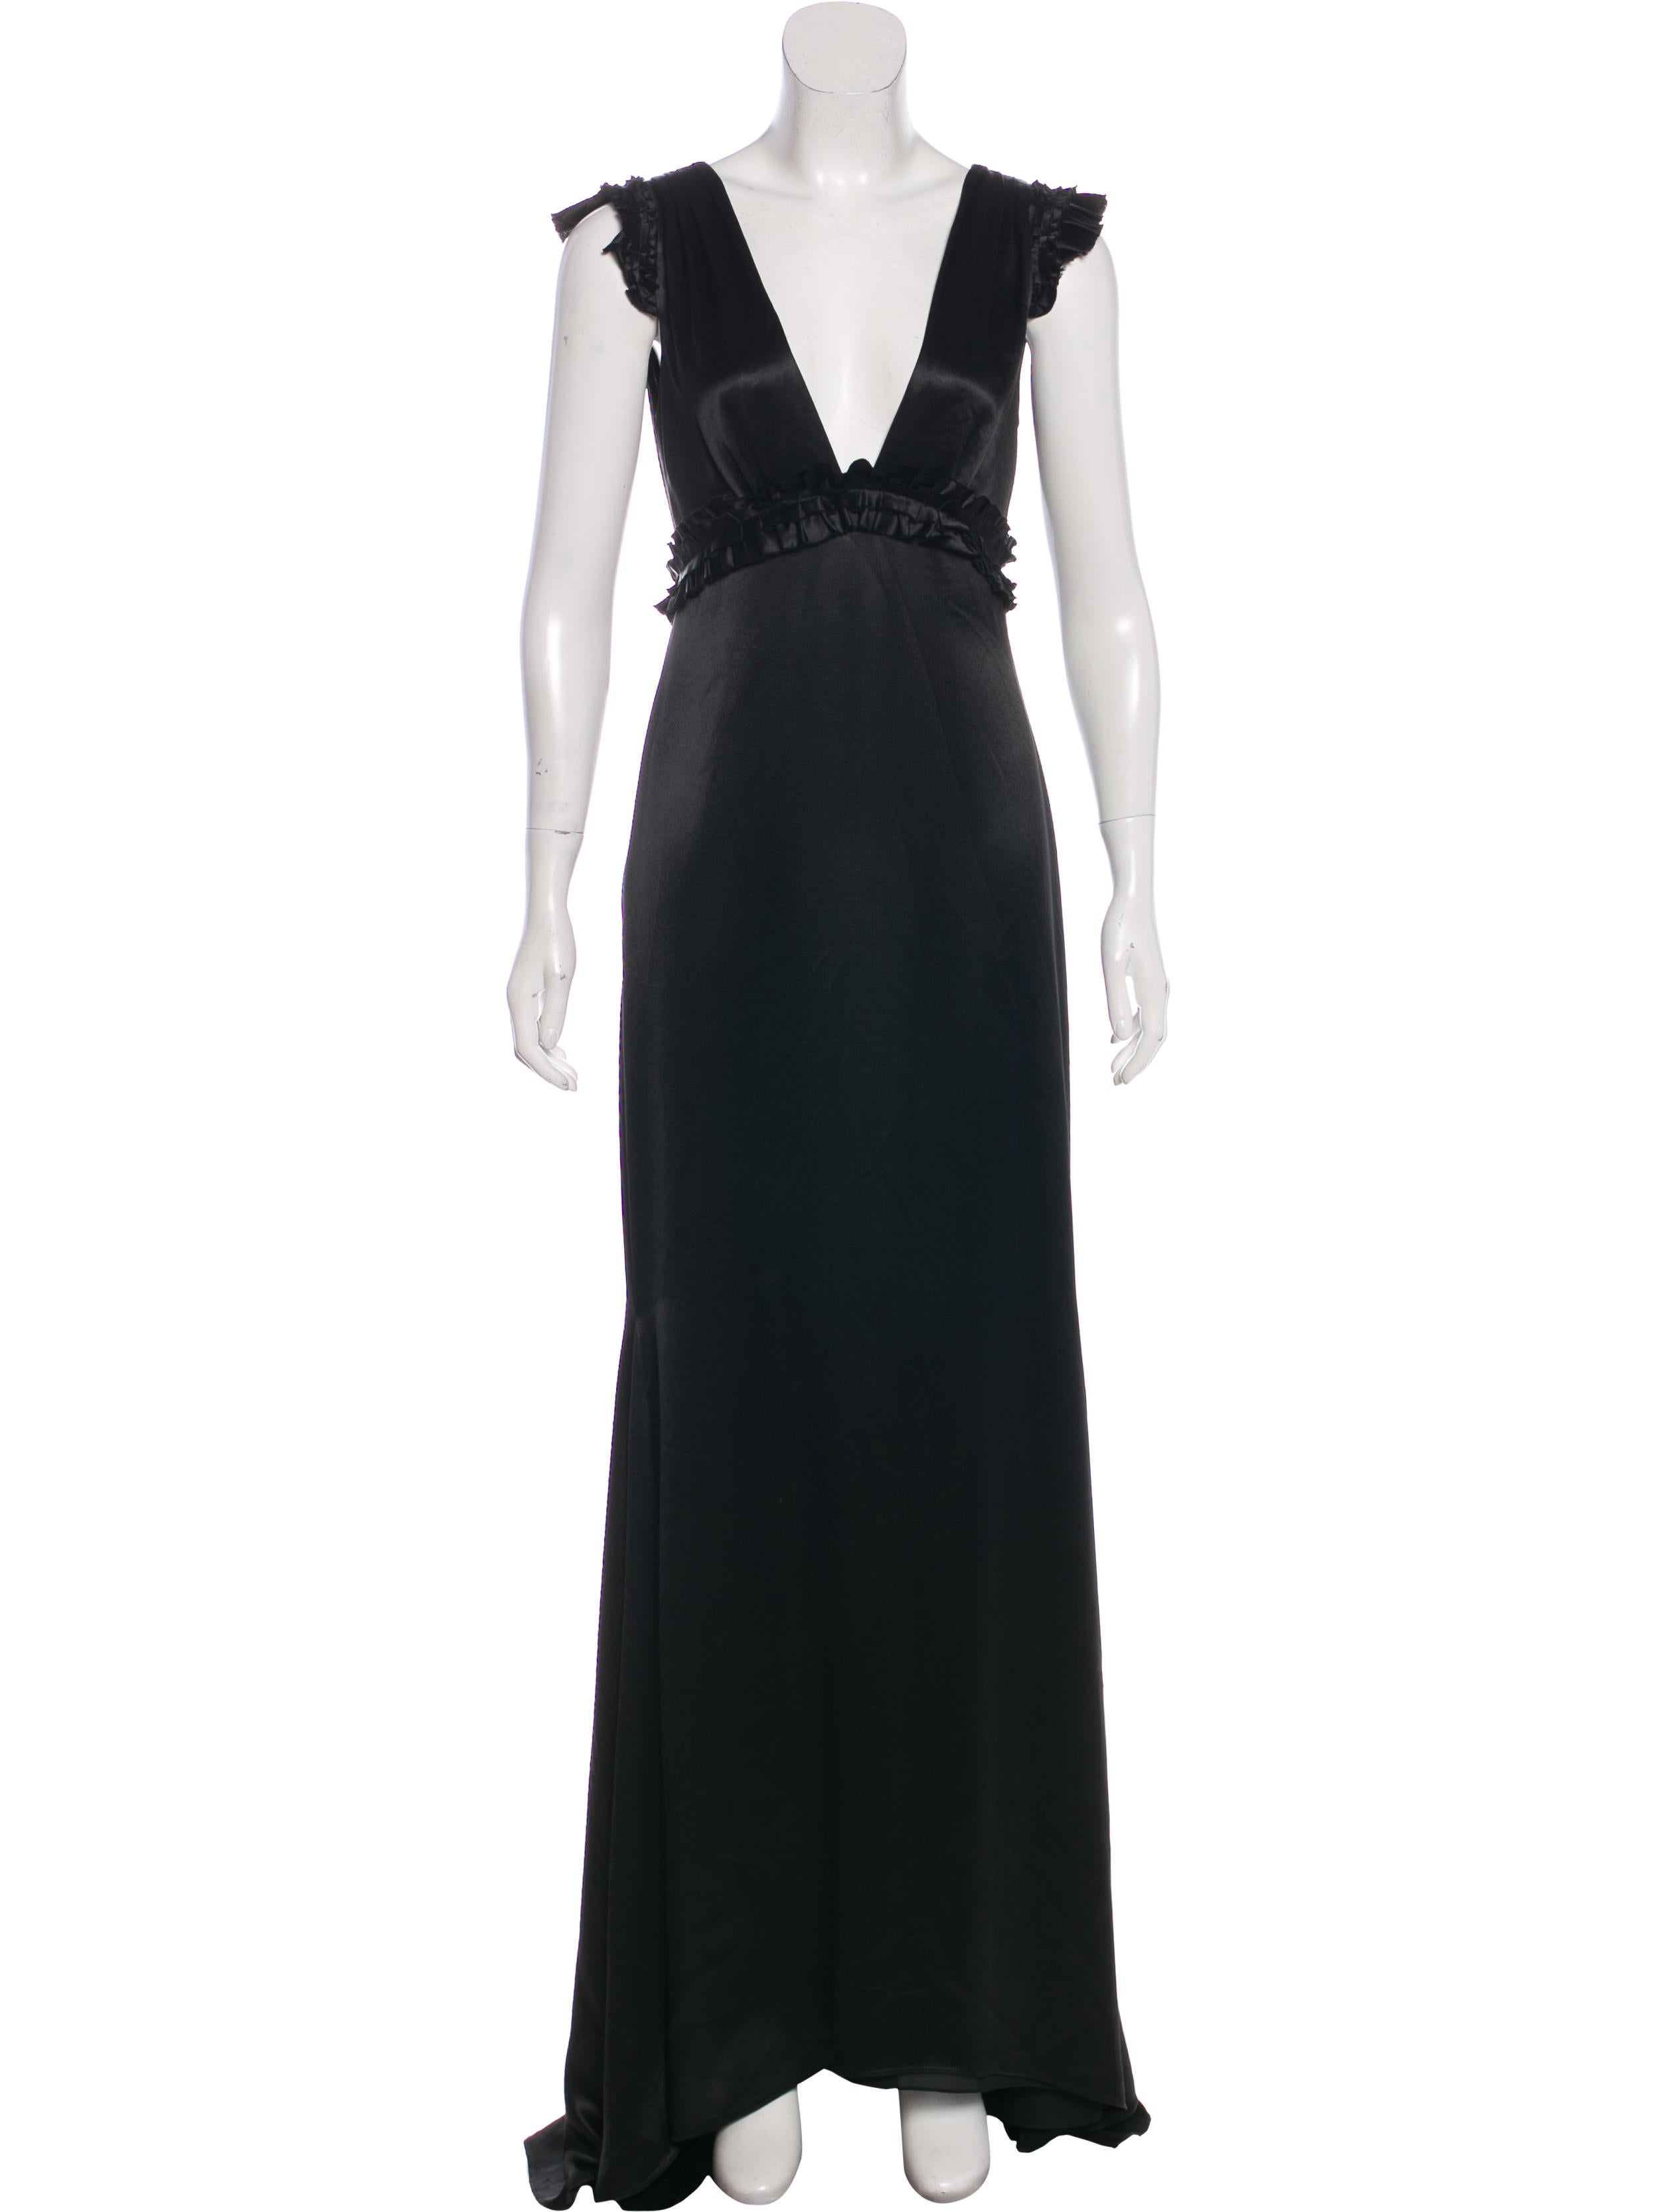 Vera Wang Pleated Evening Dress - Clothing - VER29639   The RealReal